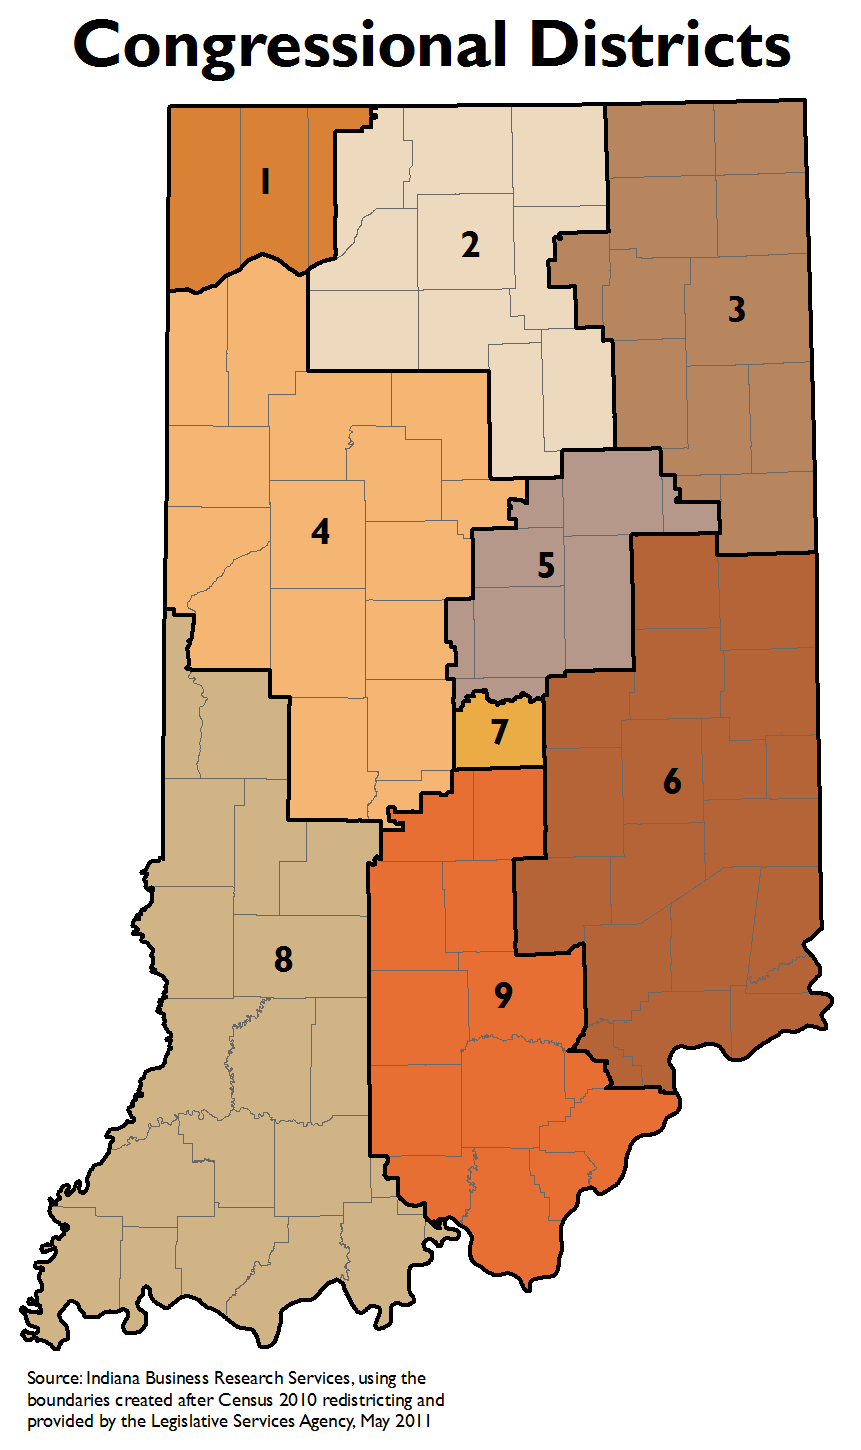 Congressional Districts By Zip Code Spreadsheet For Legislative Redistricting Topic Page: Stats Indiana